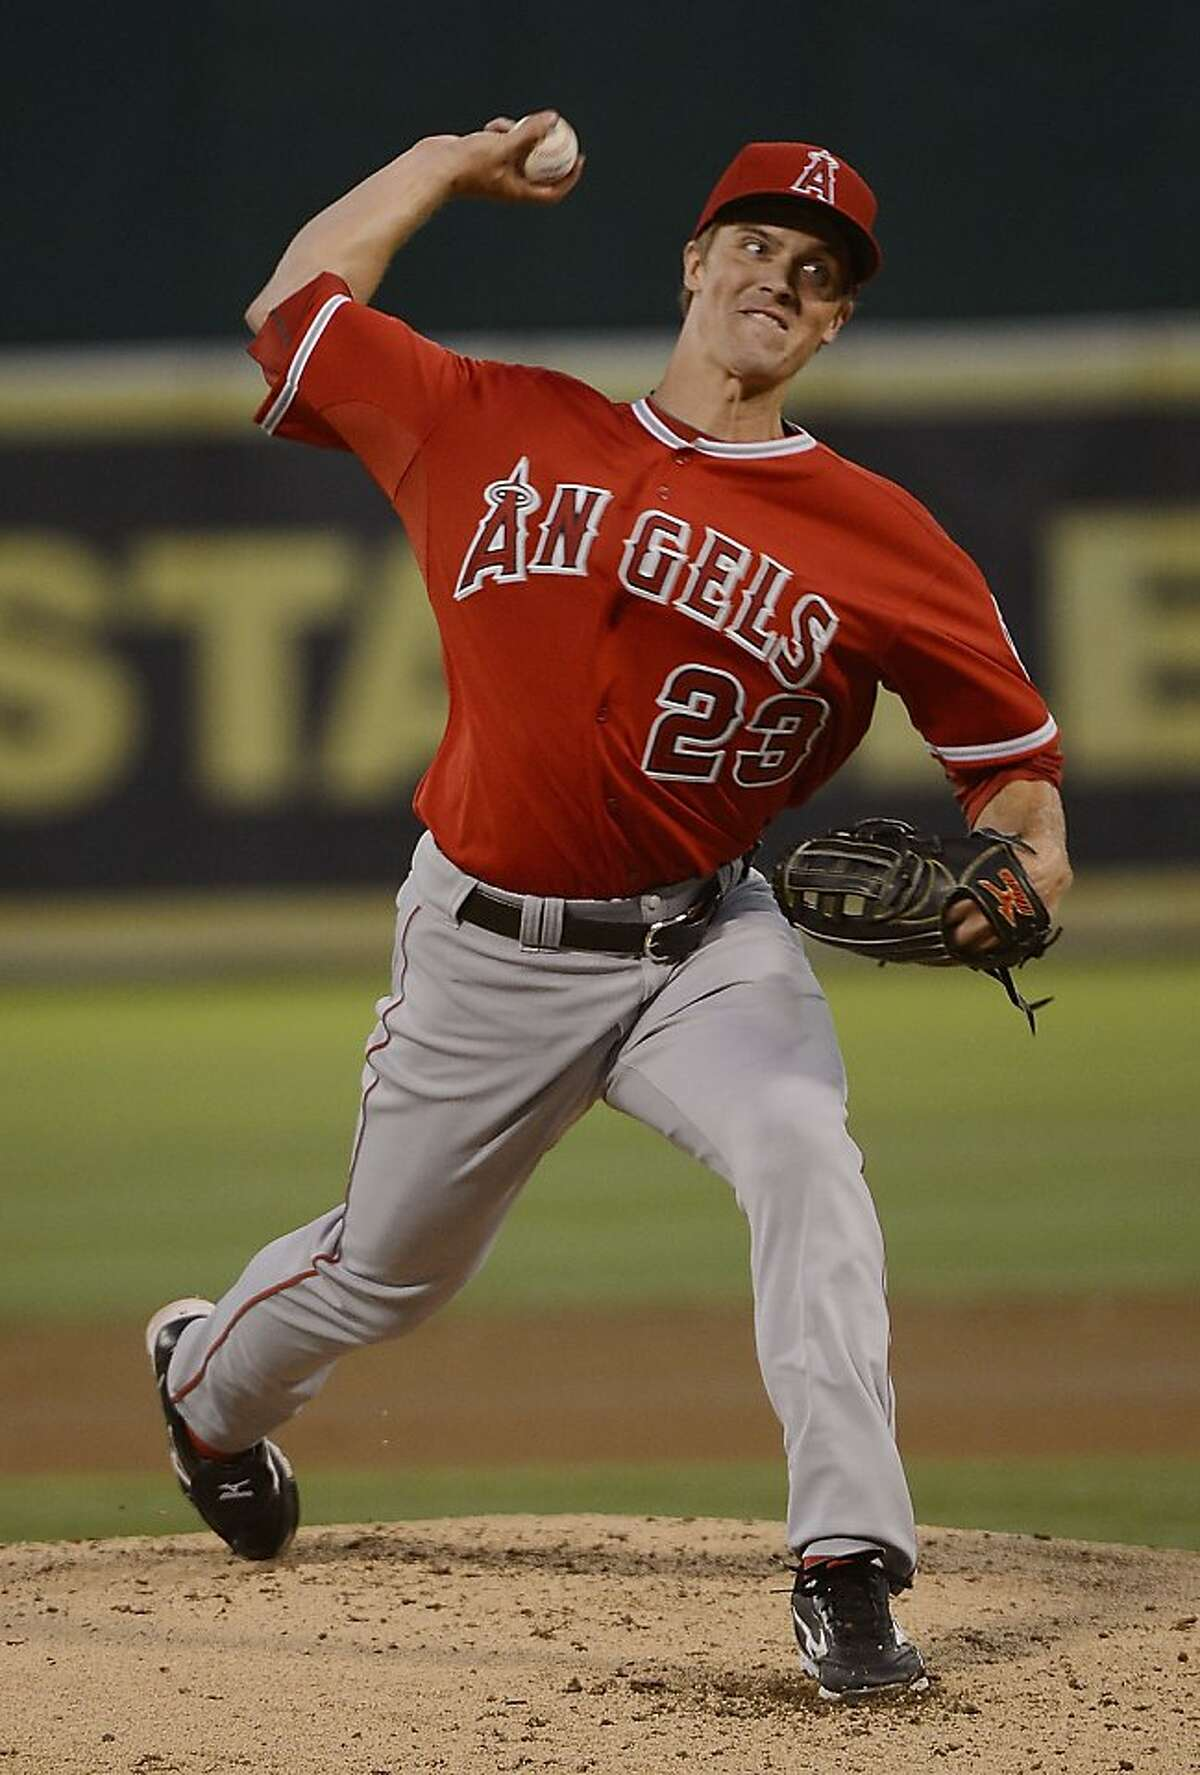 OAKLAND, CA - SEPTEMBER 04: Zack Greinke #23 of the Los Angeles Angels of Anaheim pitches against the Oakland Athletics at O.co Coliseum on September 4, 2012 in Oakland, California. (Photo by Thearon W. Henderson/Getty Images)